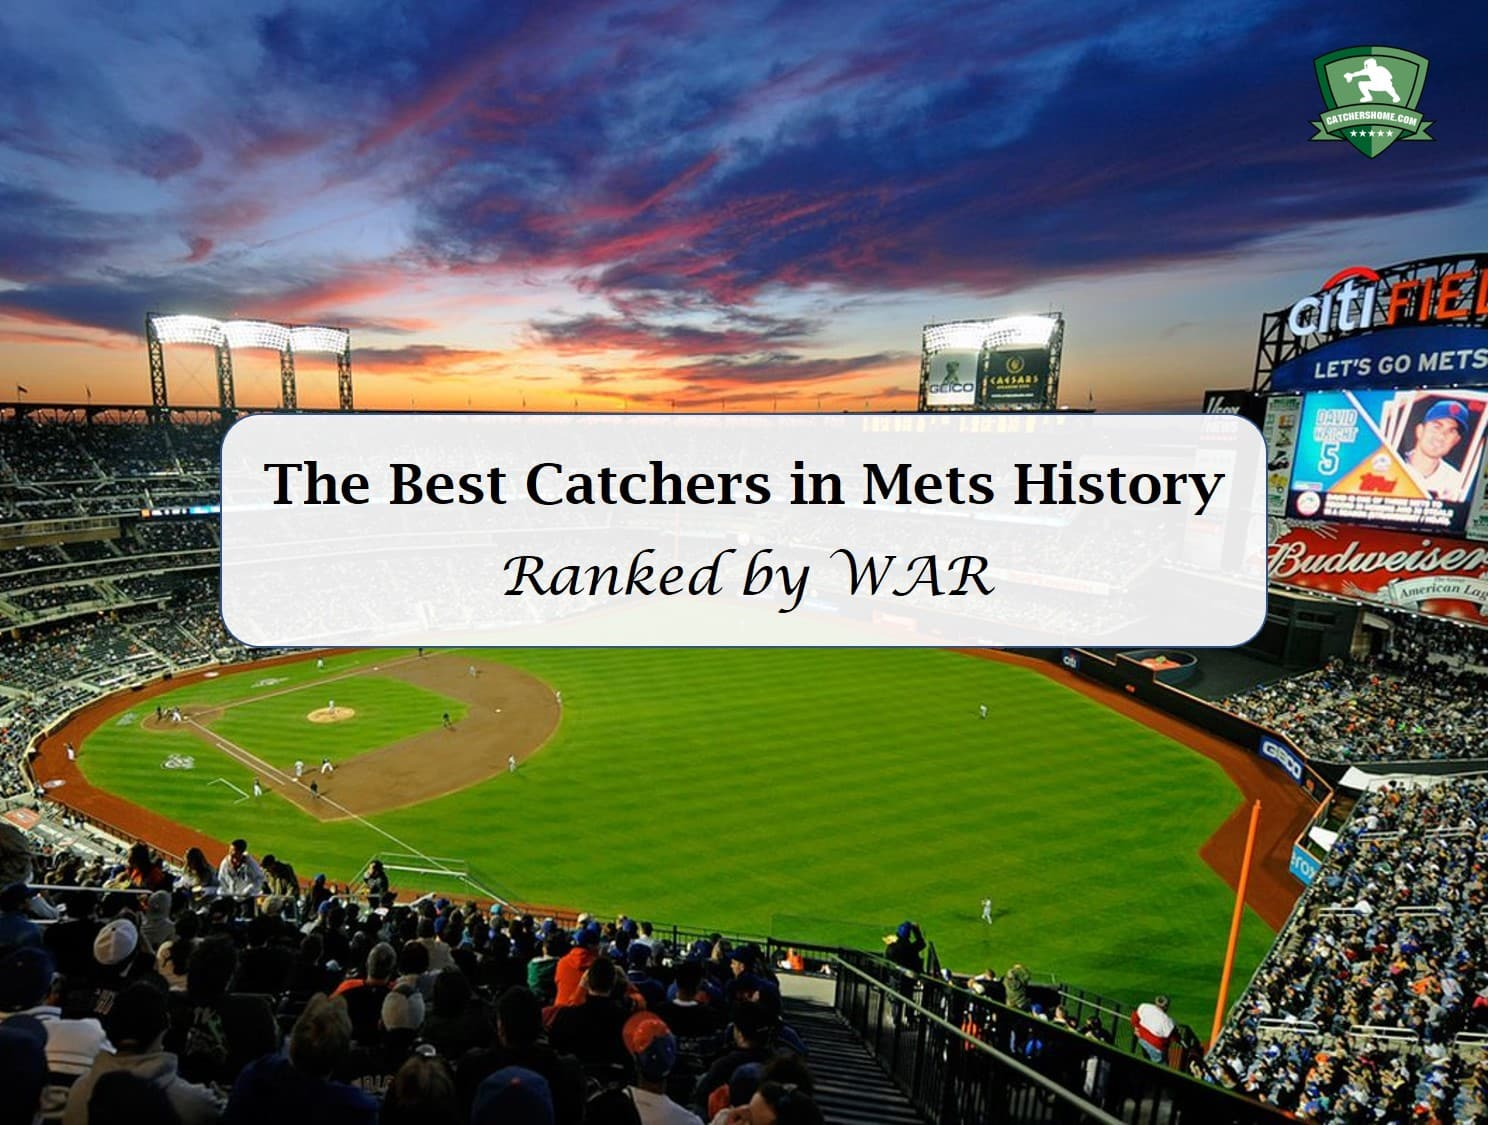 The best catchers in New York Mets history, best Mets catchers of all time